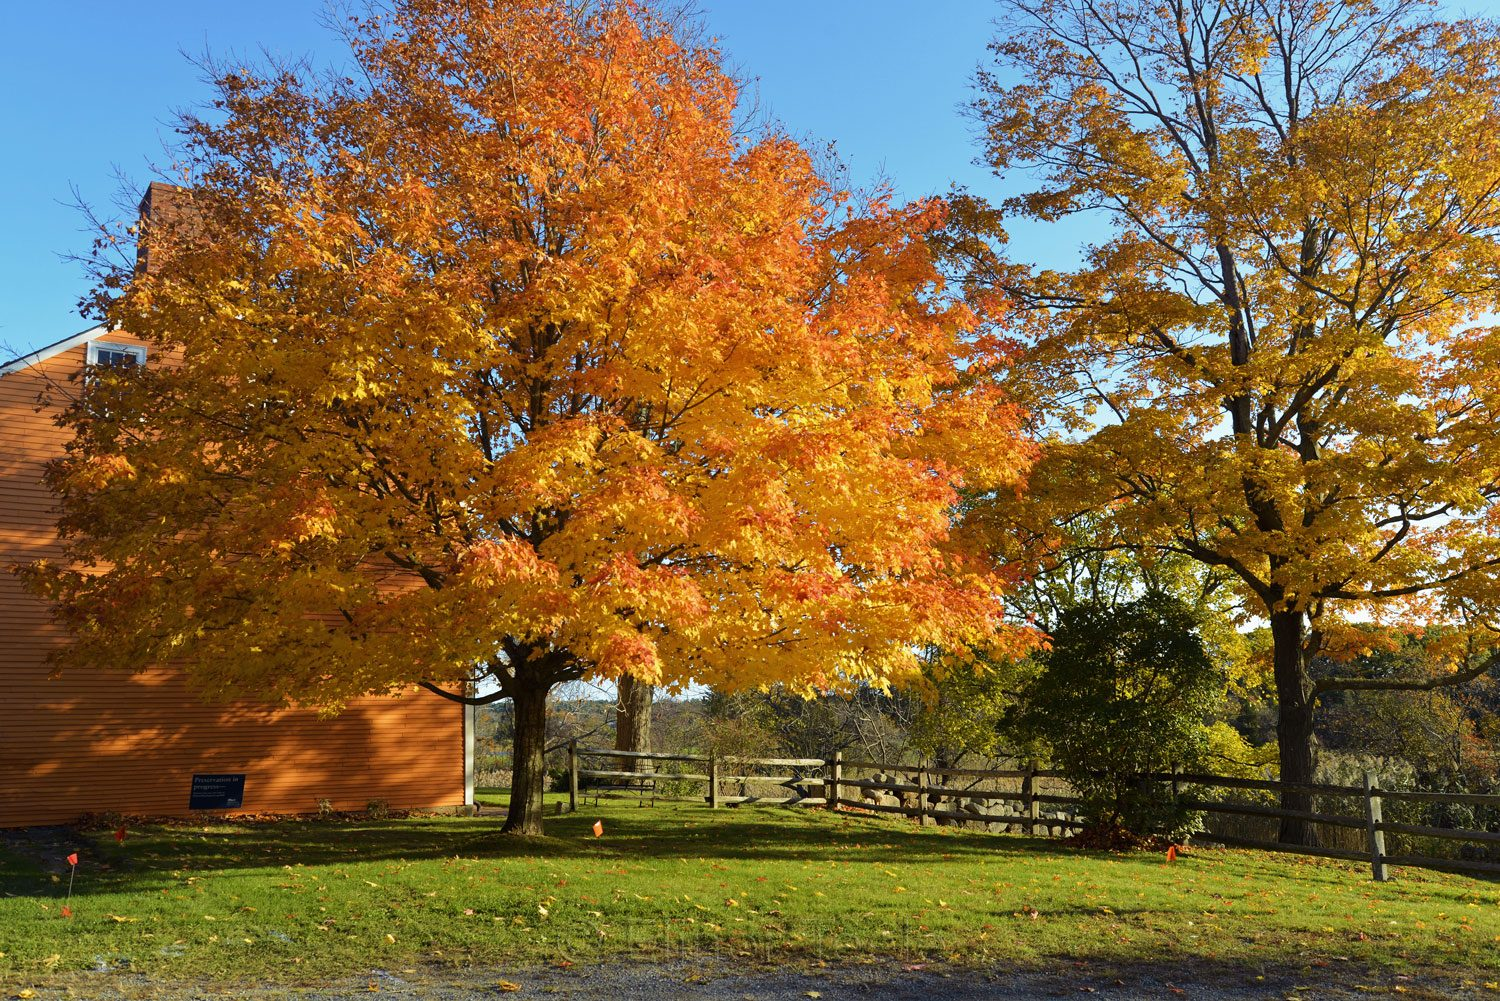 Cogswell's Grant - Fall Foliage, Essex MA 3